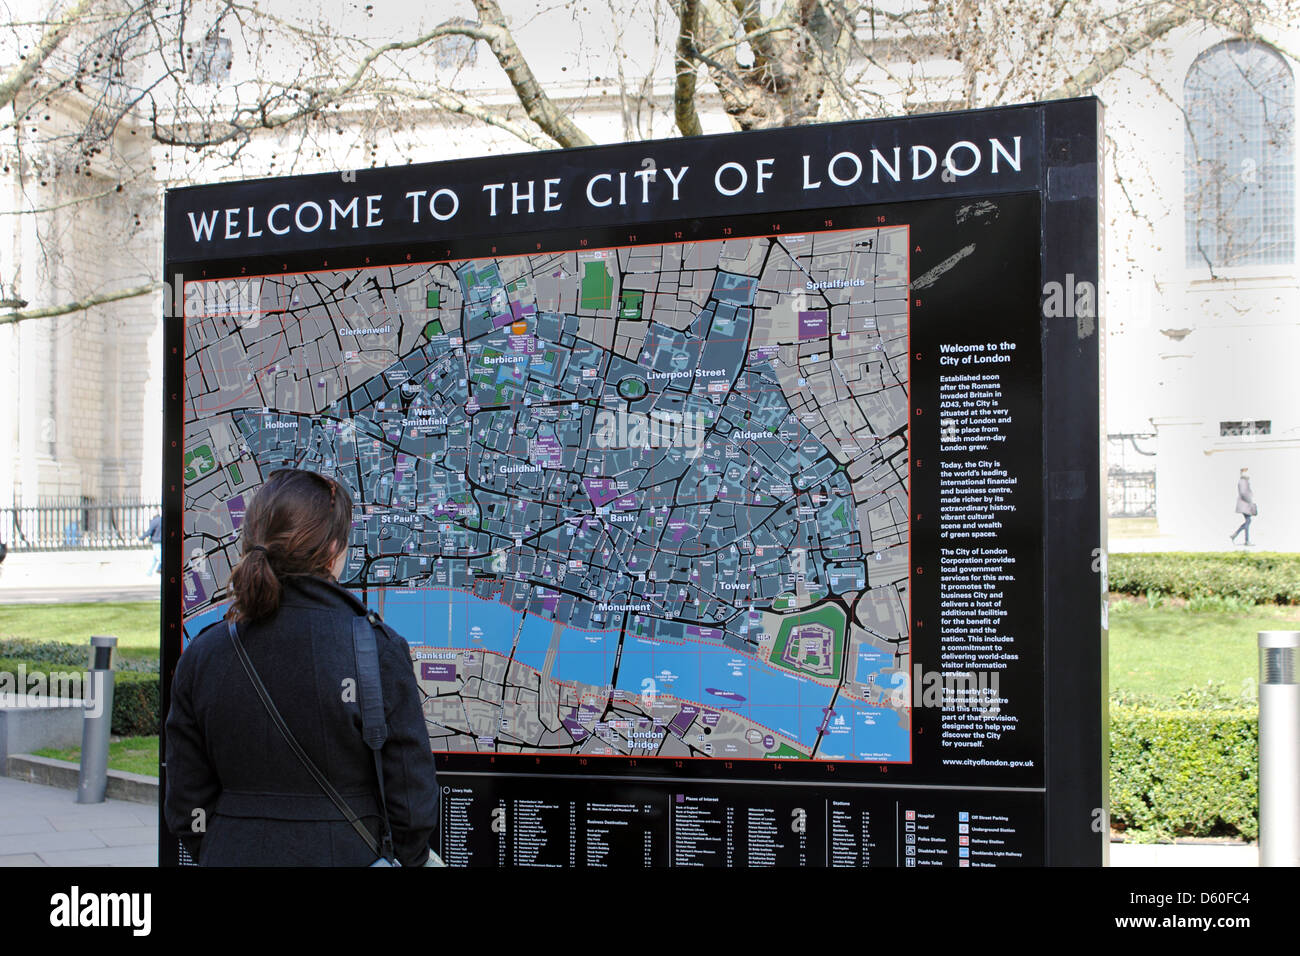 Map Of City Of London Uk.City Of London Tourist Map London England Uk Stock Photo 55331140